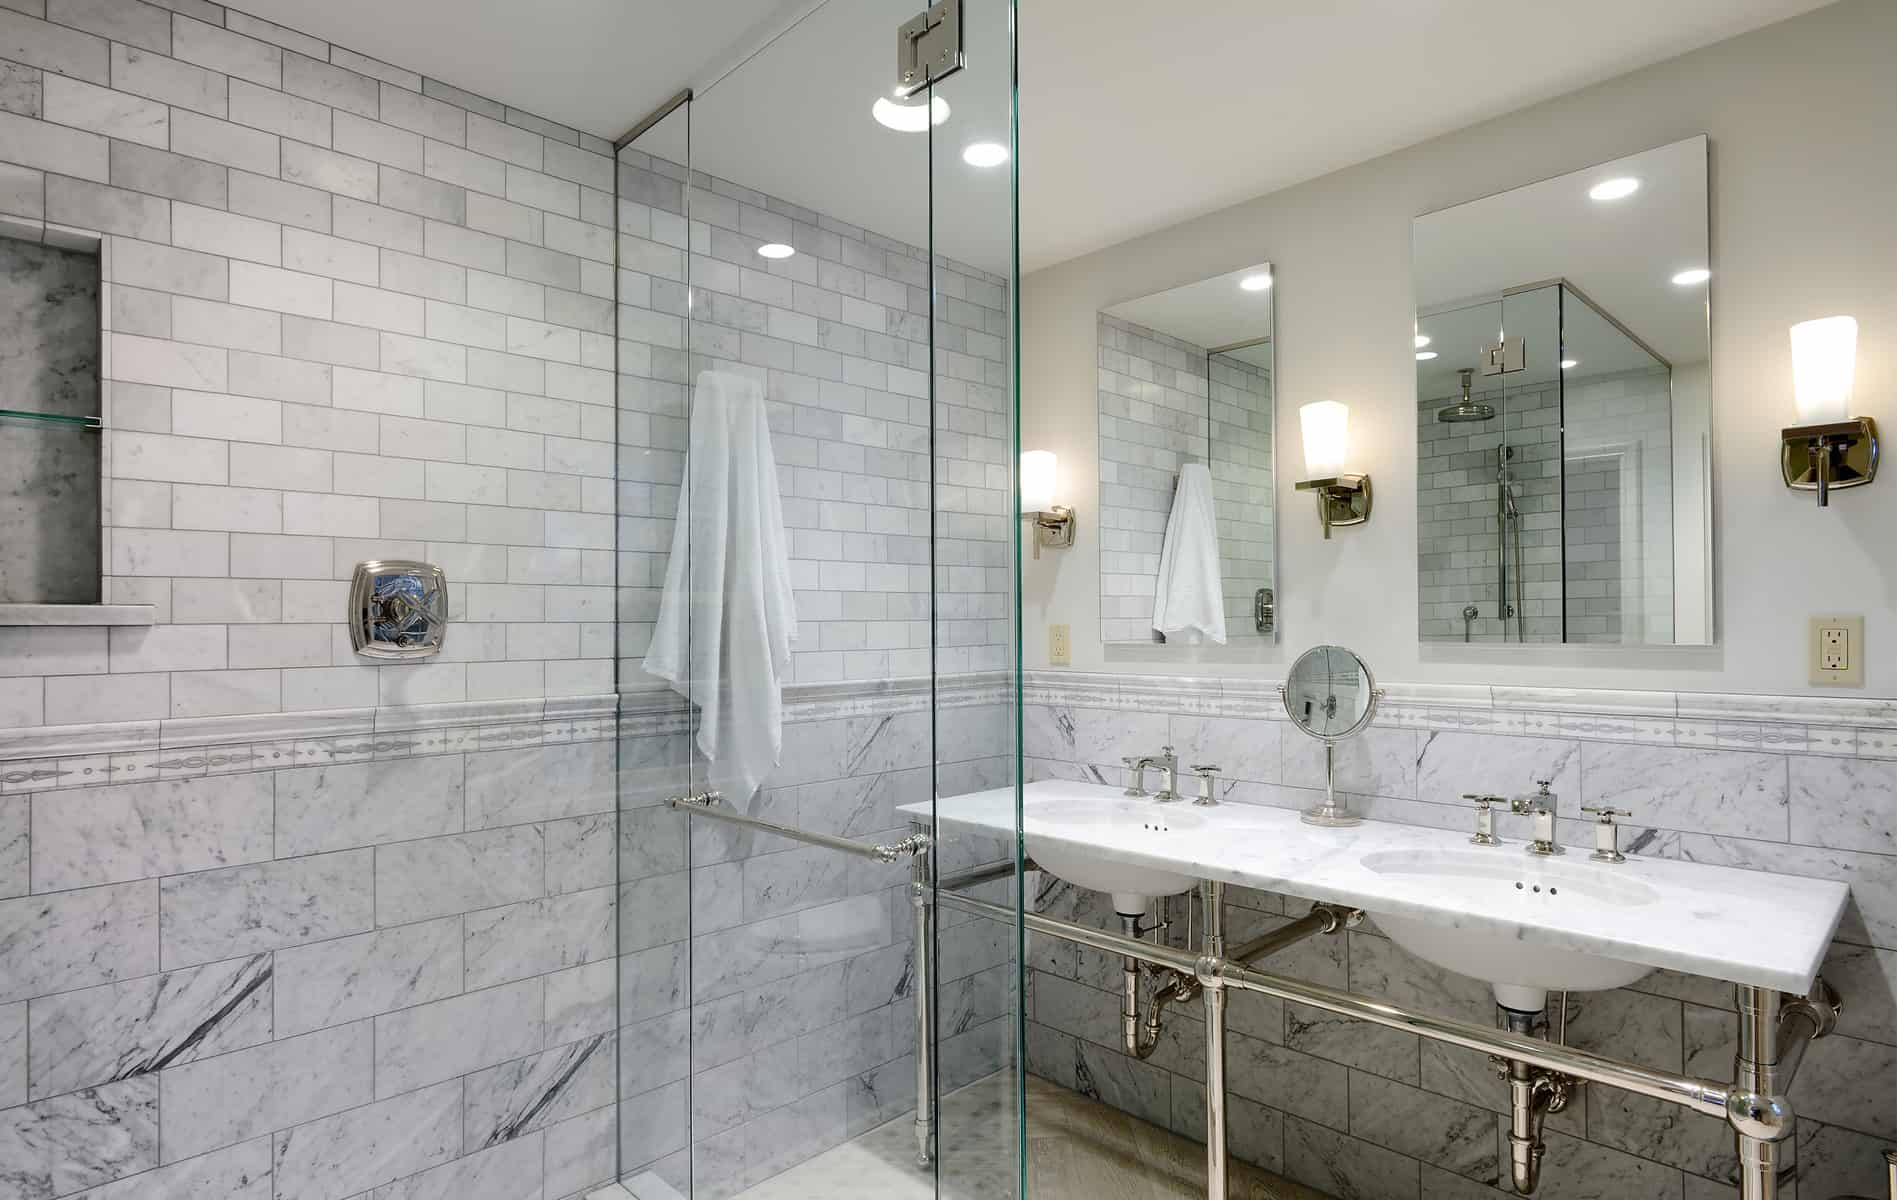 7 smart strategies for bathroom remodeling biederman